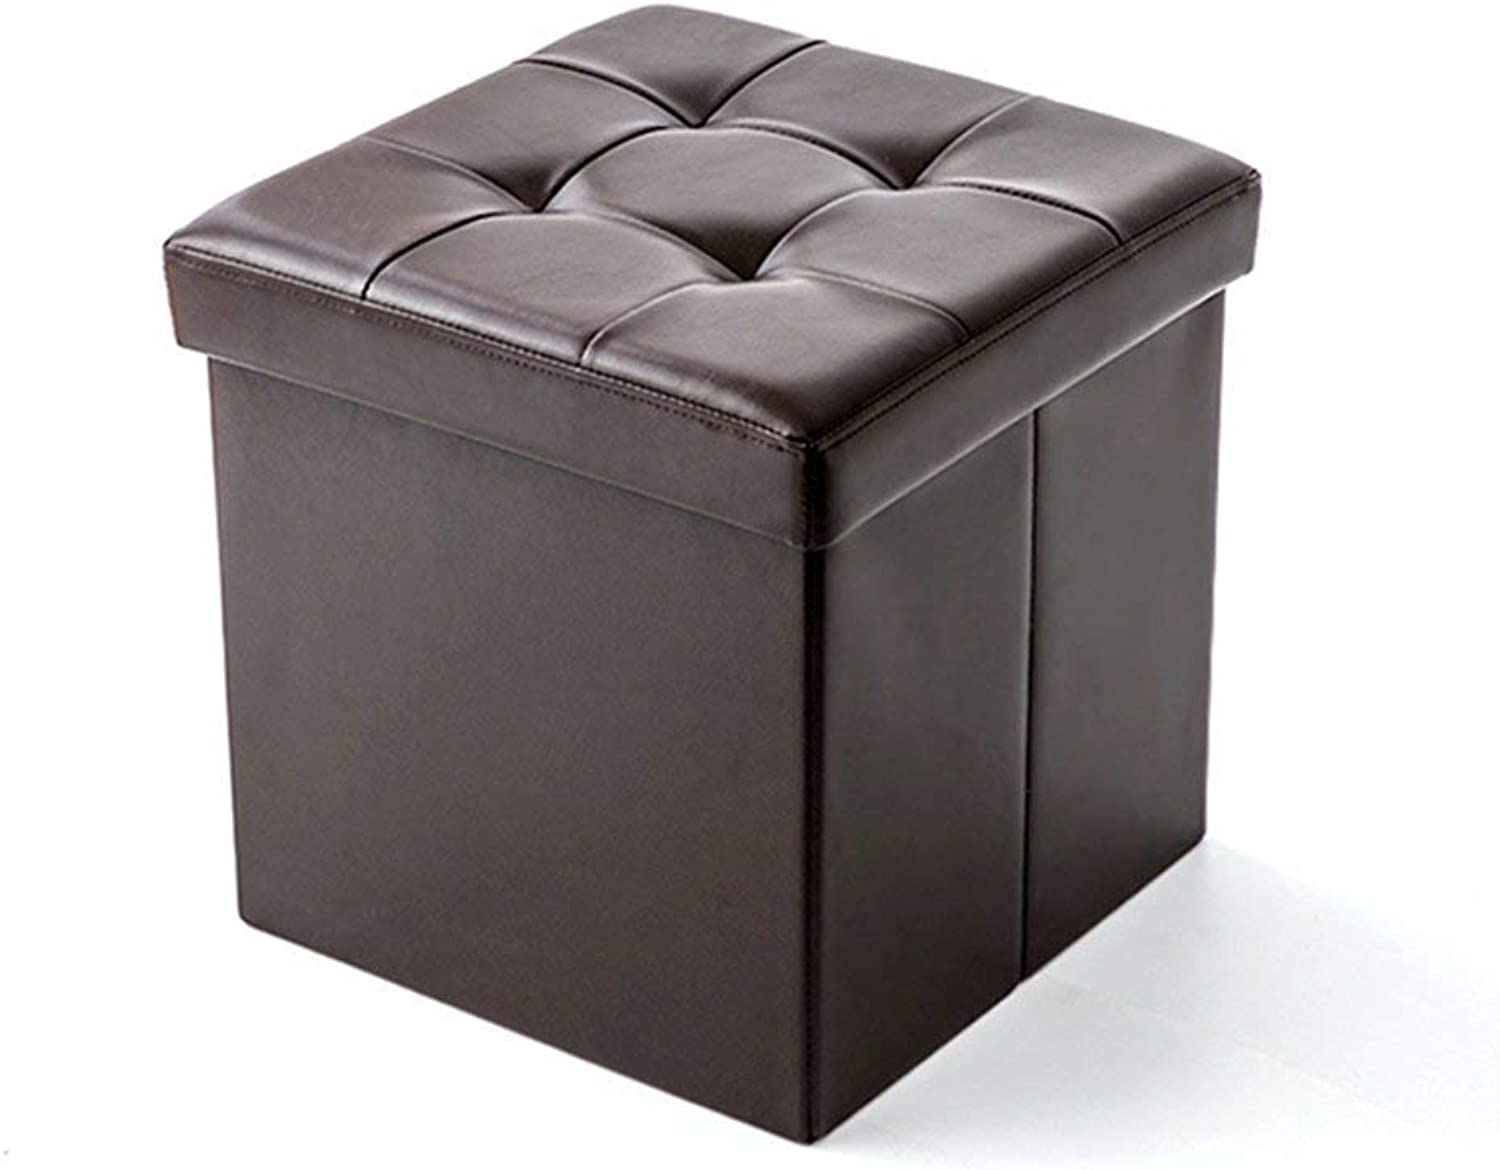 ChenDz Cute Stool Multi-Purpose shoes Bench Creative Storage Box can sit Adult Sofa Bench Square Storage Stool Home Storage Cabinet (color   Brown)